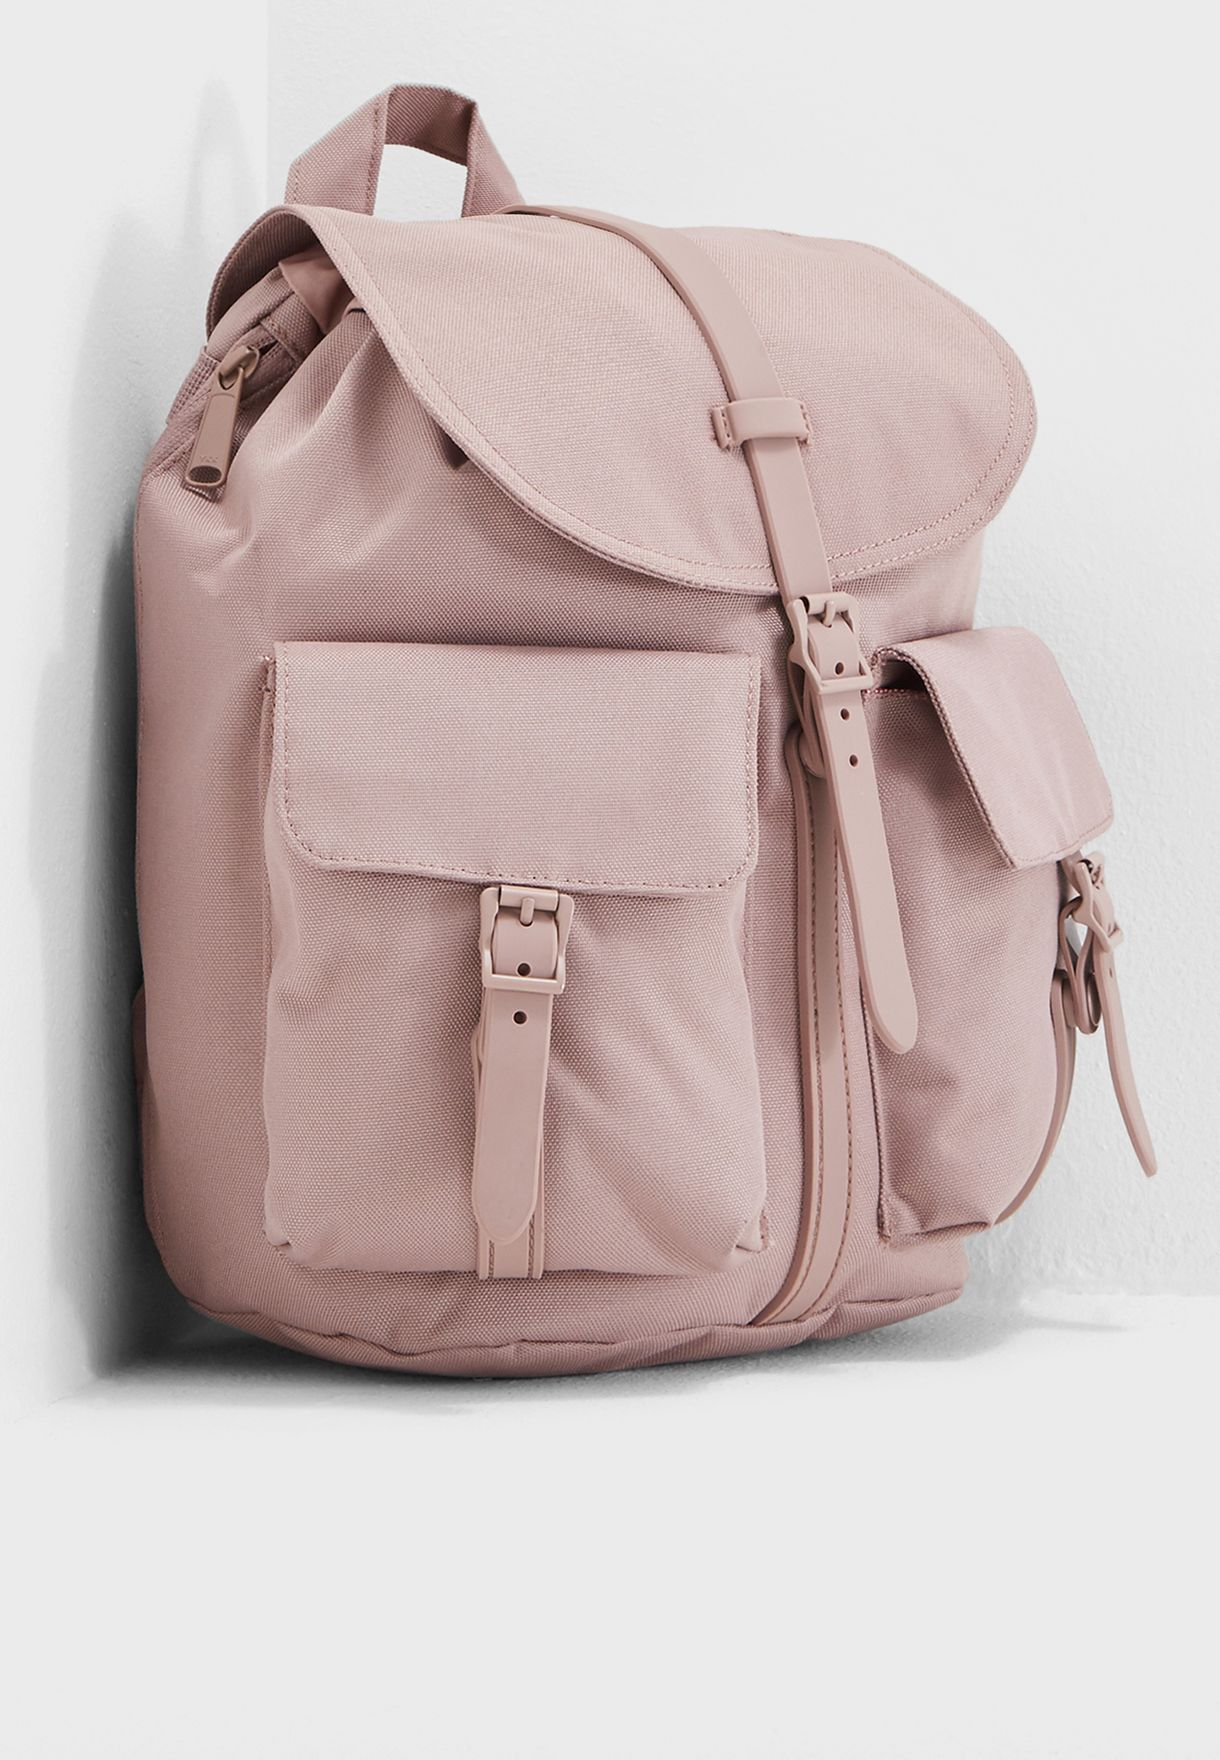 9080bce11 Shop Herschel pink Extra Small Dawson Backpack 10301-02077-OS for ...